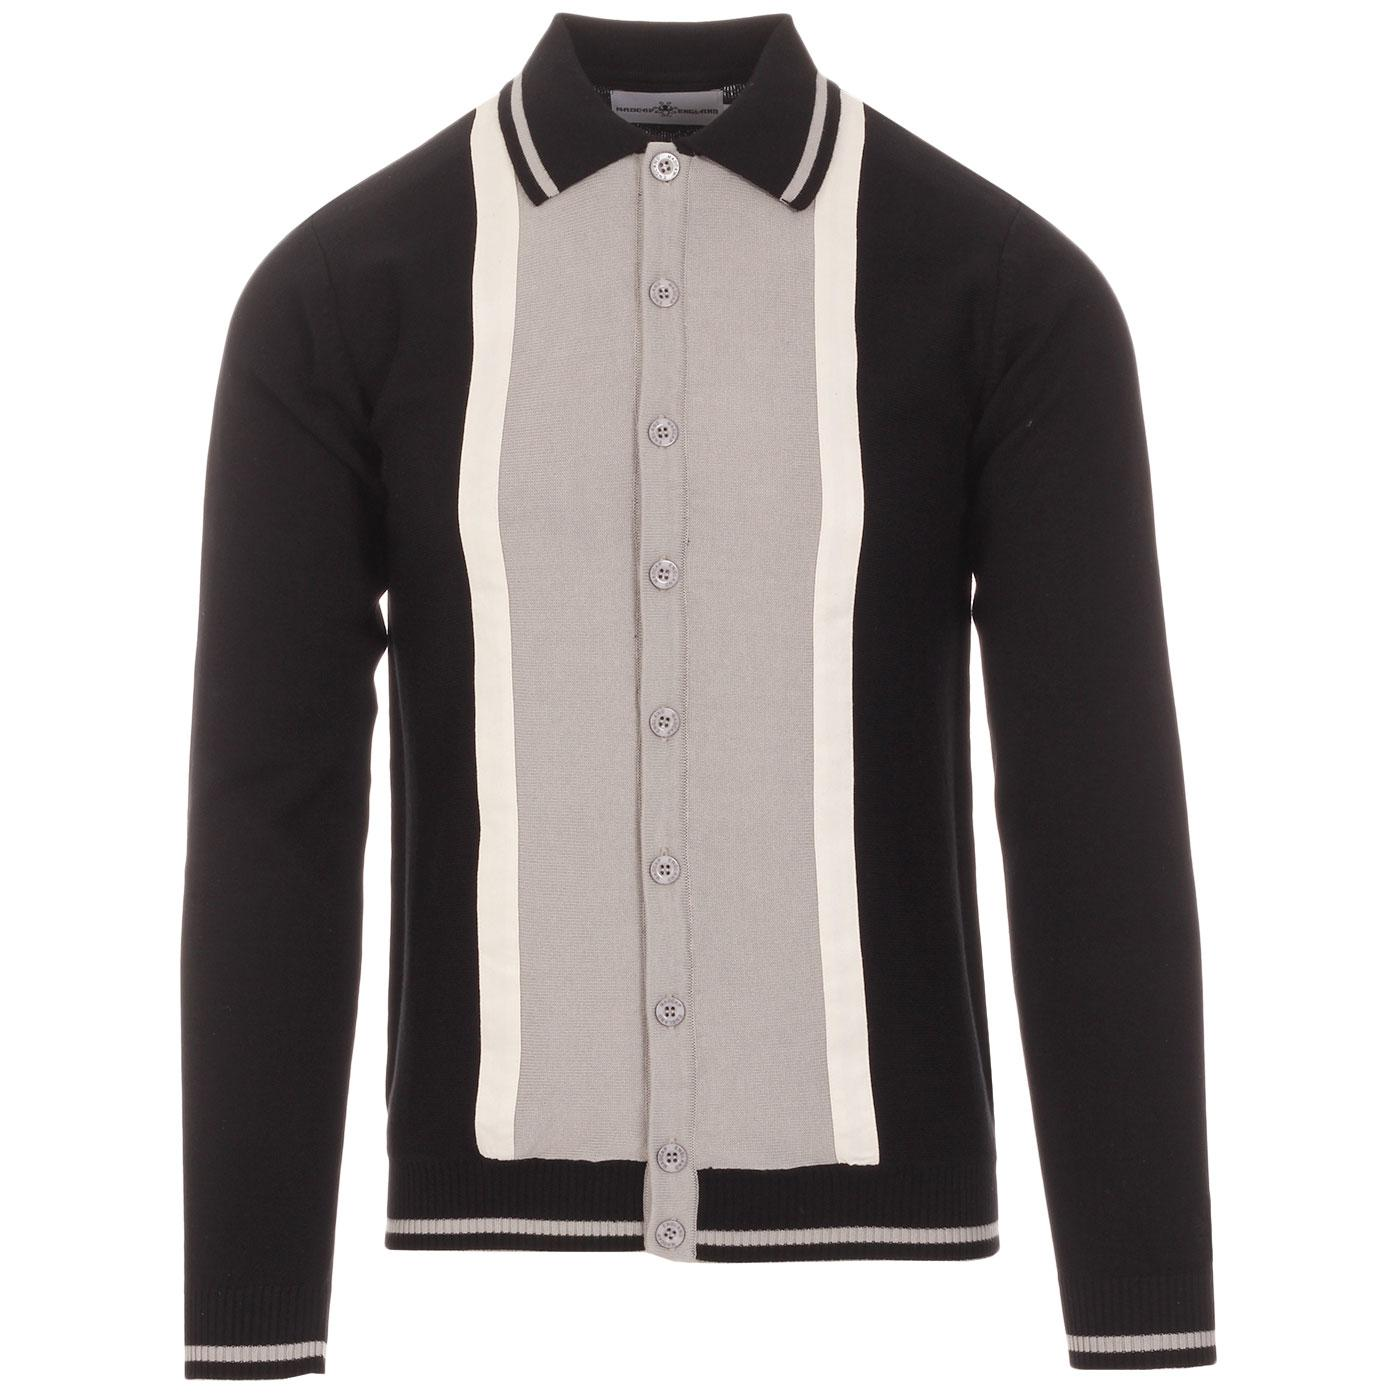 Madcap England Mono Marriott Suede 1960s Mod Knitted Button Through Polo Shirt in Black and Drizzle Grey